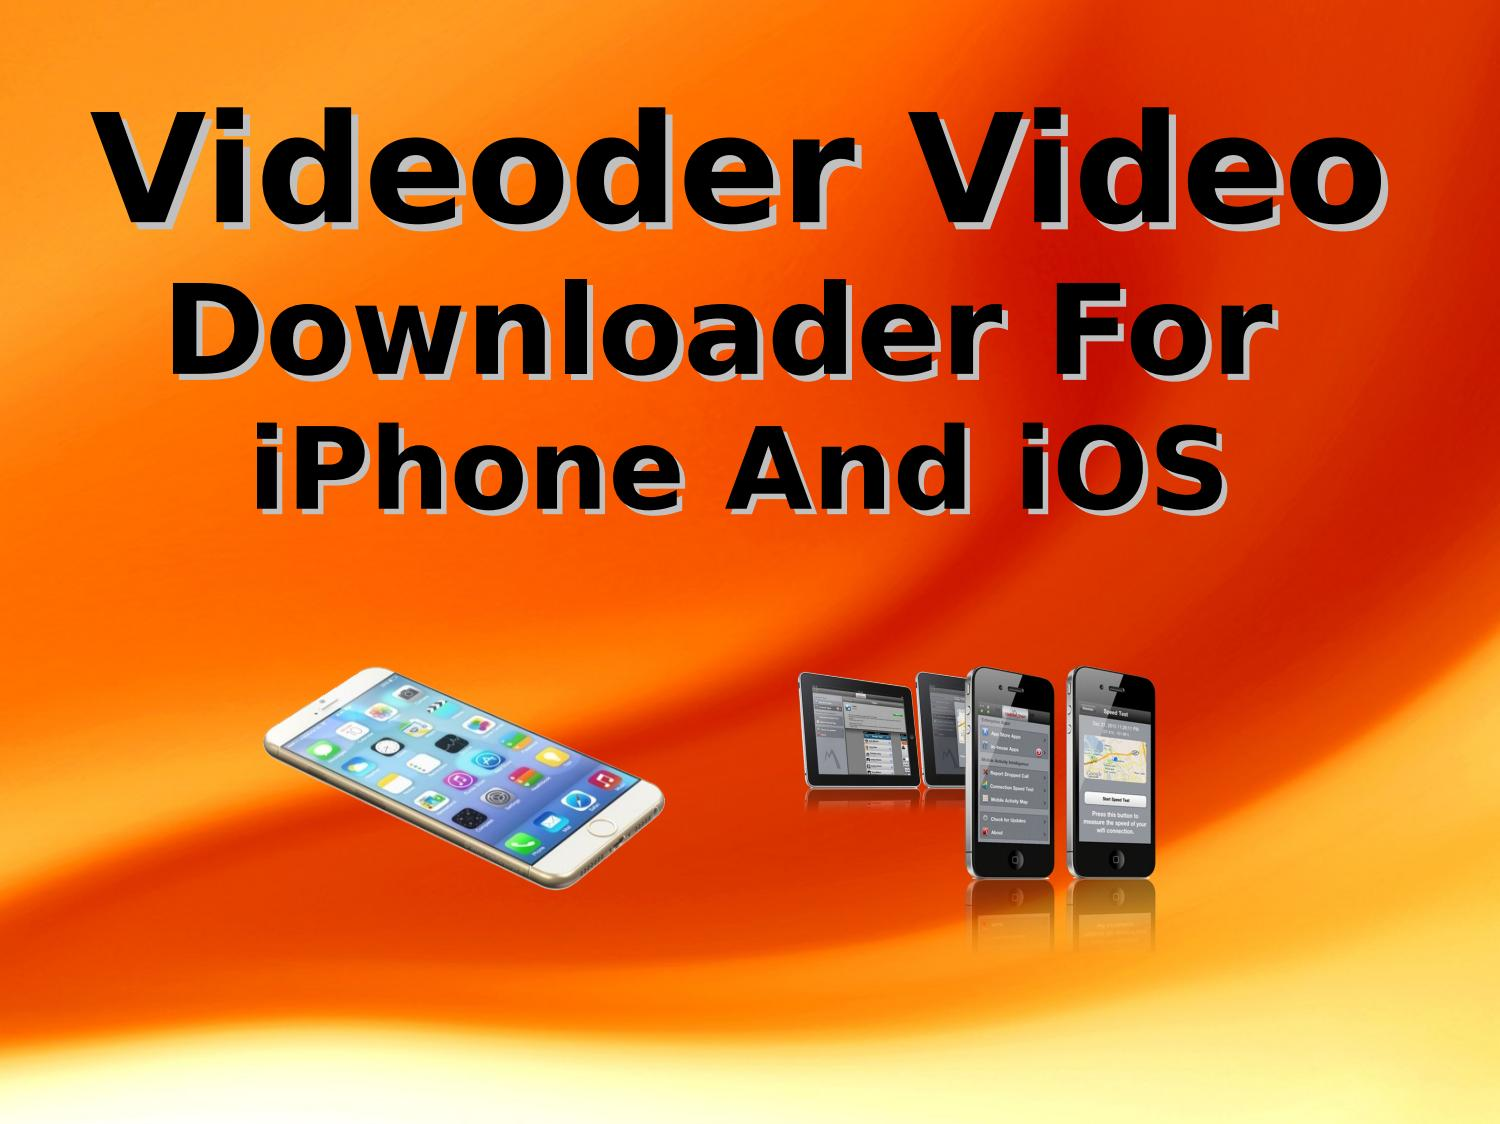 Videoder video downloader for iphone and ios by Bridget